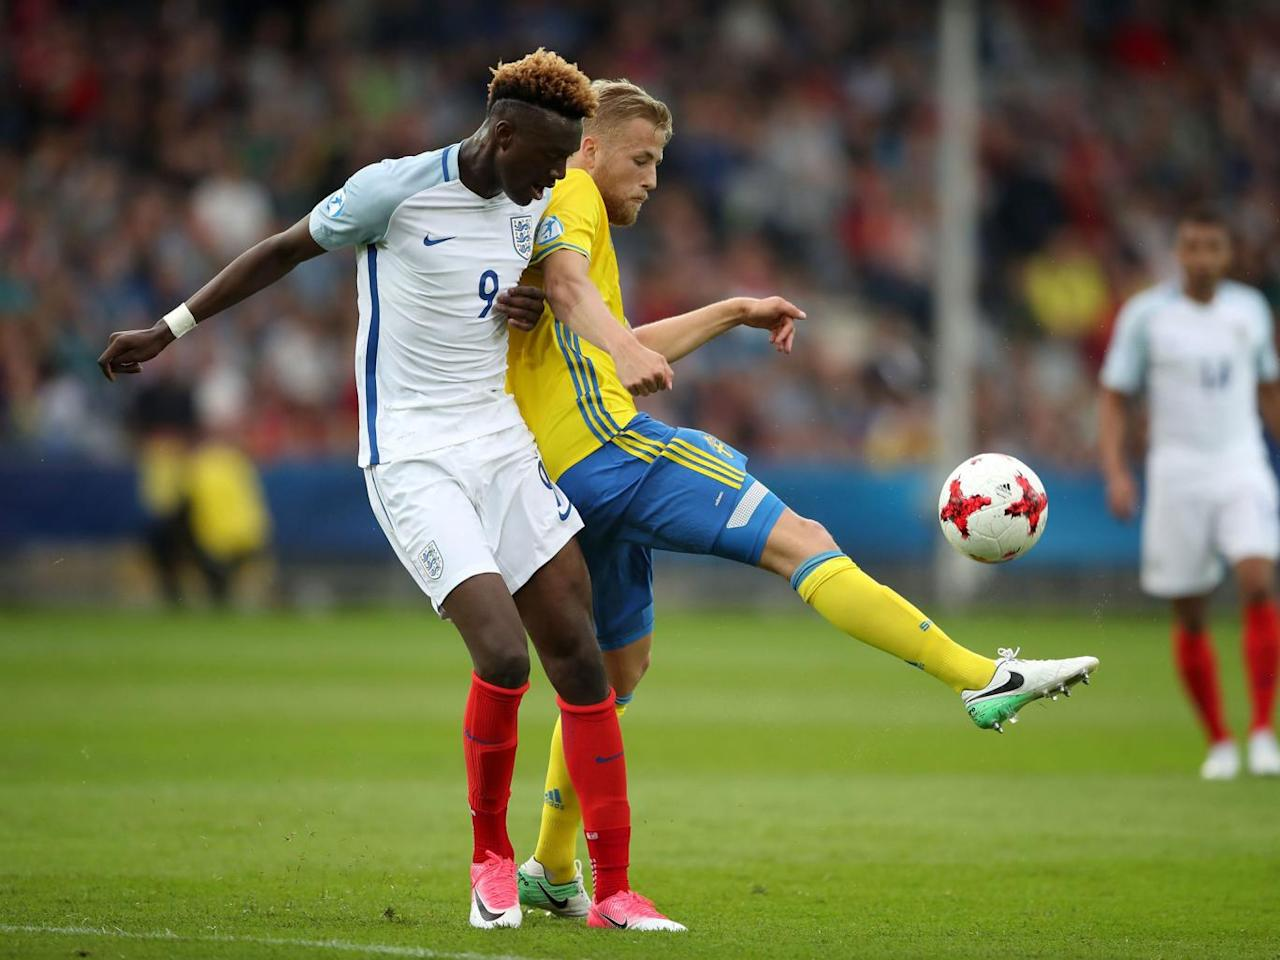 Stung Poland to pose 'passionate' challenge to England U21s' semi-final qualification hopes